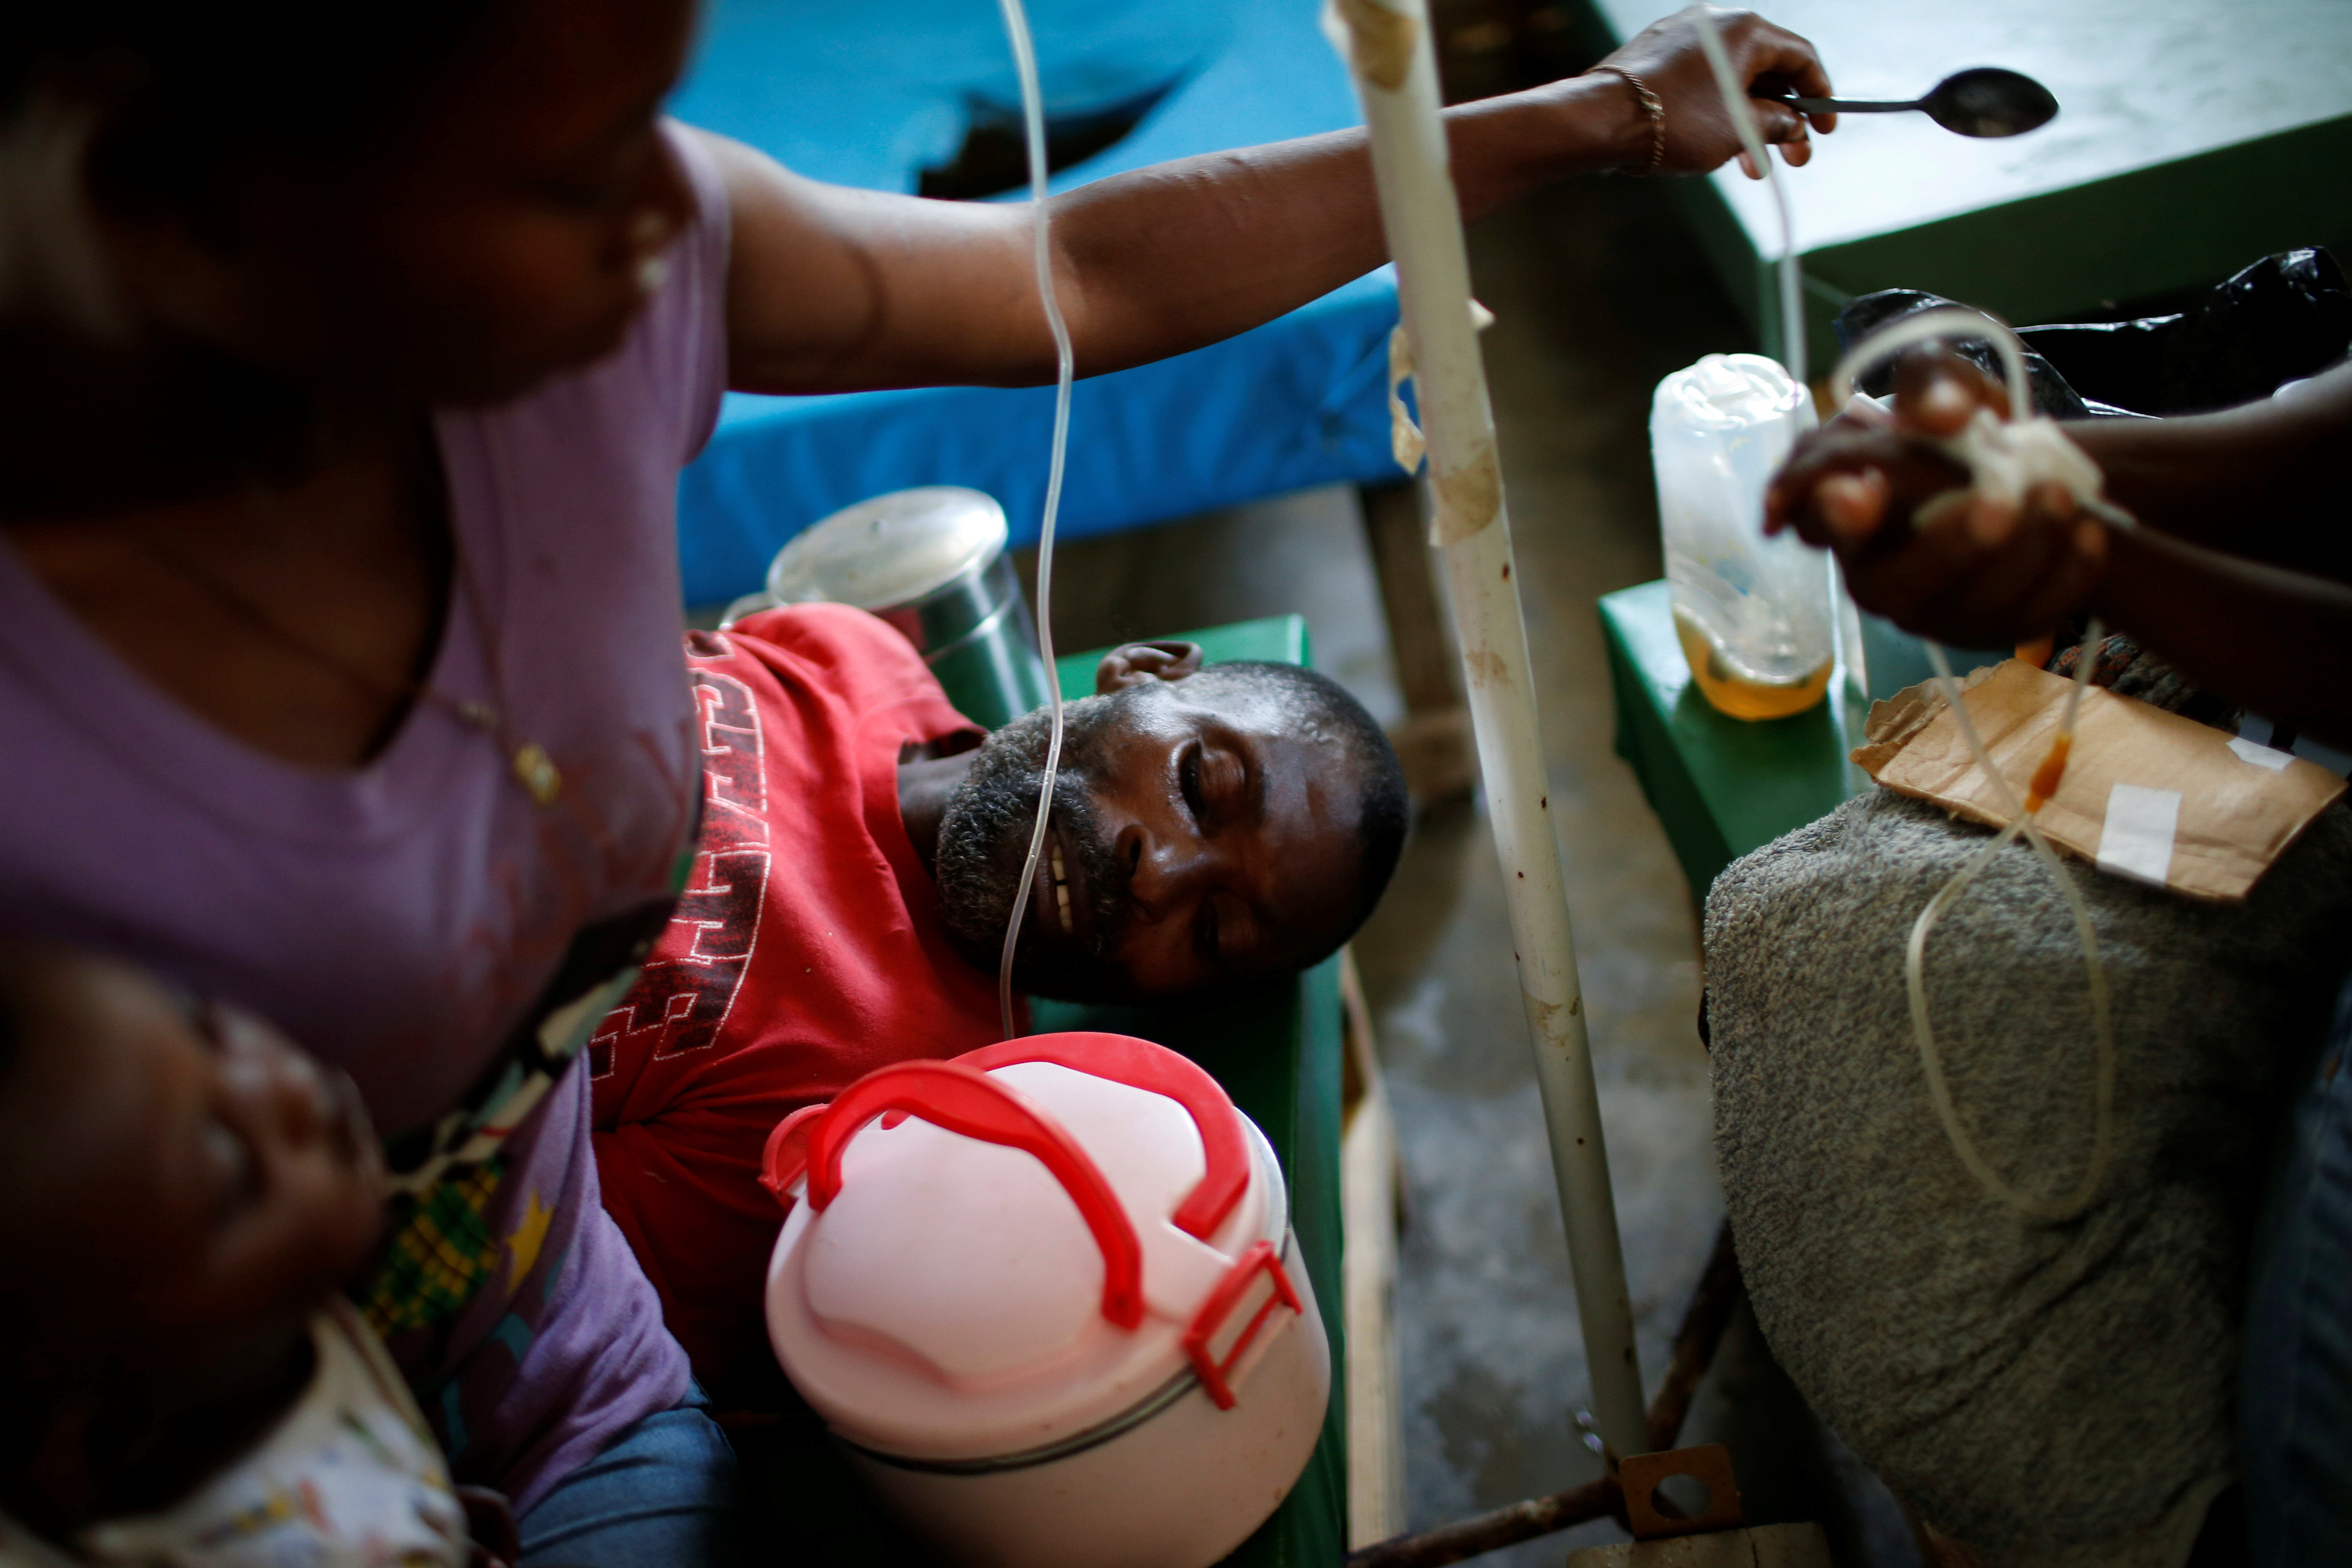 People are treated for cholera at a hospital in Jeremie, Haiti. The International Medical Corps was among the groups warning that cholera cases could spread from the heavy rains and flooding. Photo by Carlos Garcia Rawlins/Reuters